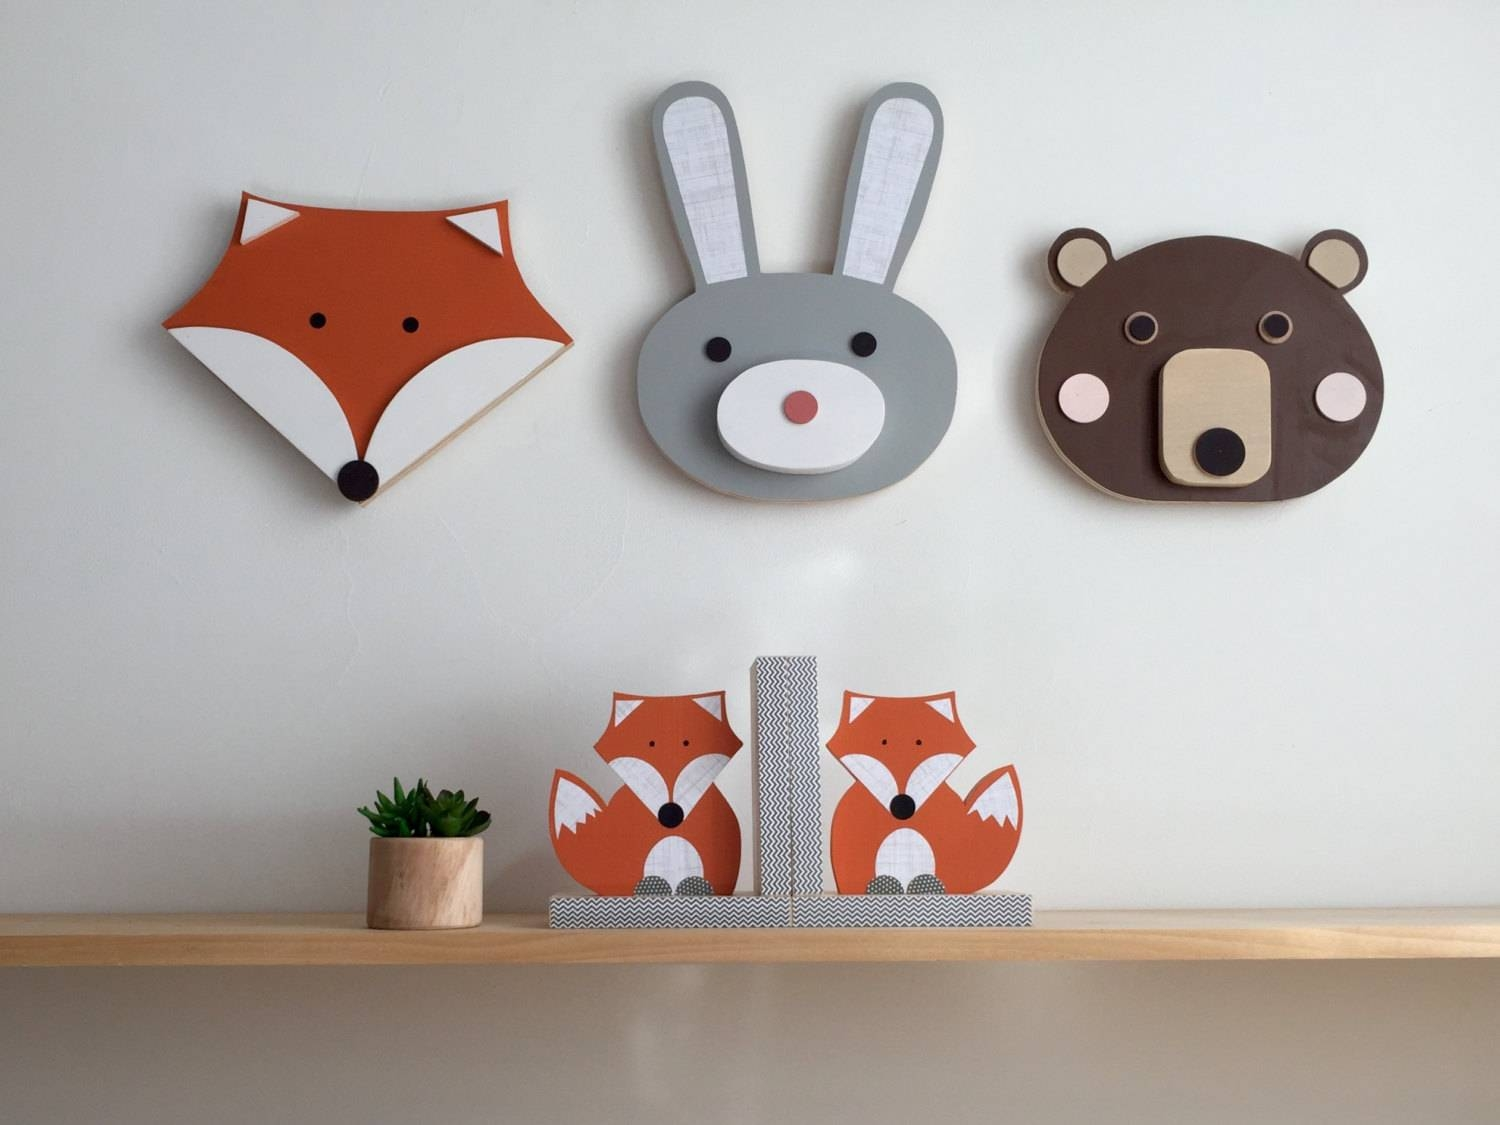 Animal Wall Art, Wood Wall Art, Wooden Animal. Nursery Decor, Bear Regarding Current Wooden Animal Wall Art (Gallery 4 of 20)